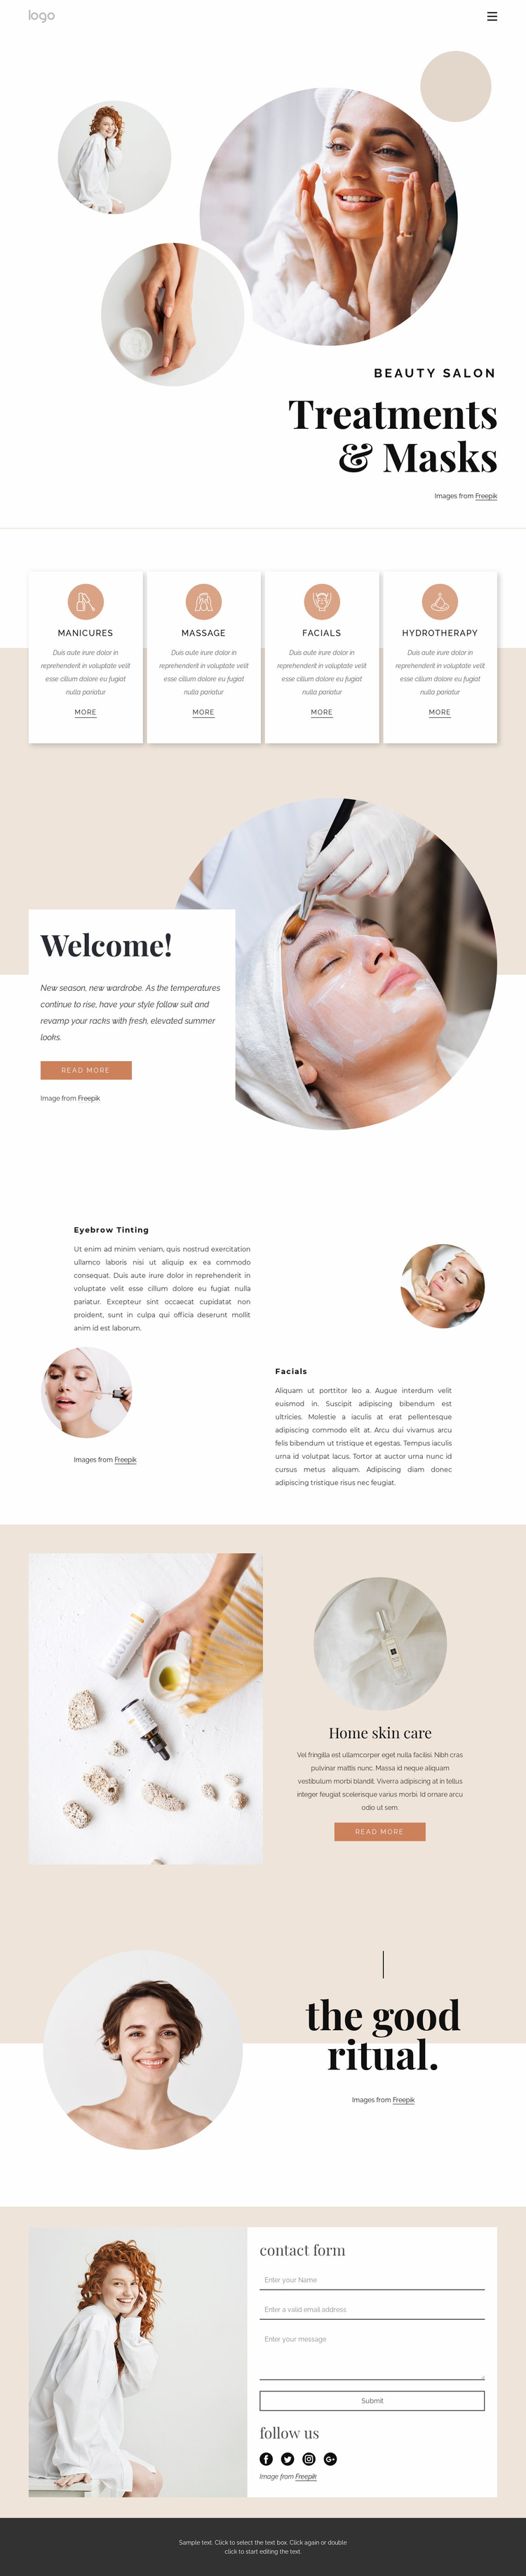 Body treatments and massages Website Design